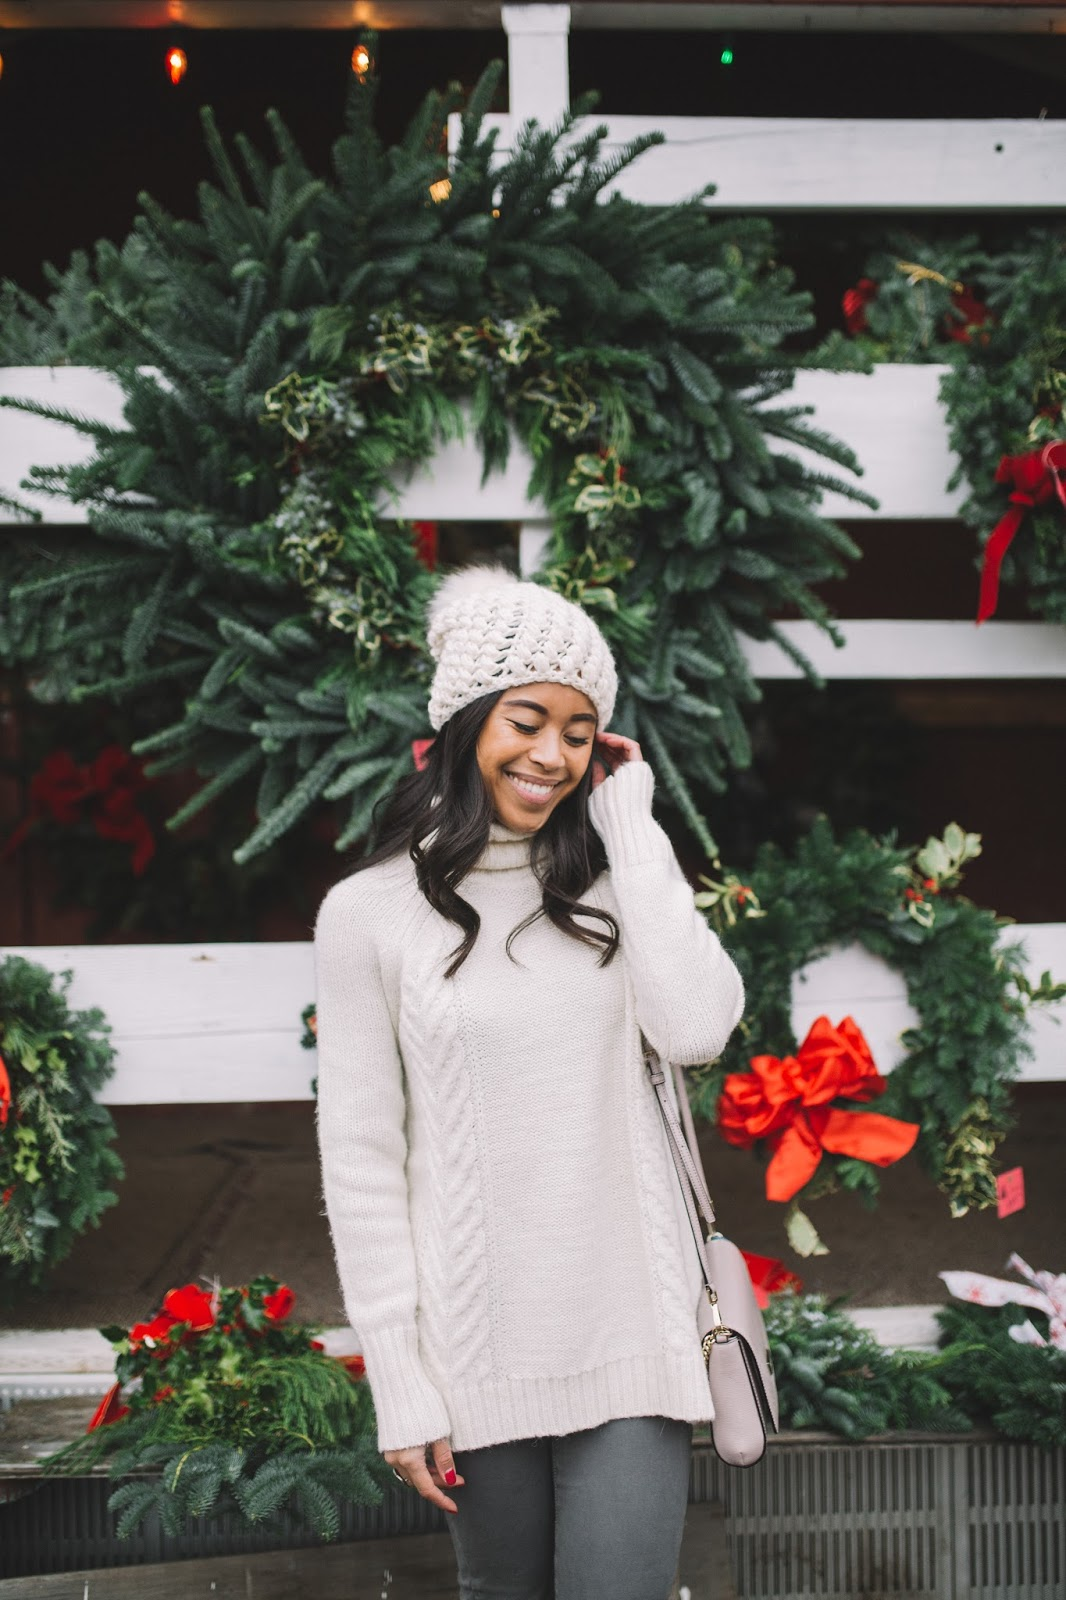 Casual Chic Christmas + Why I Love Partnering with AEO